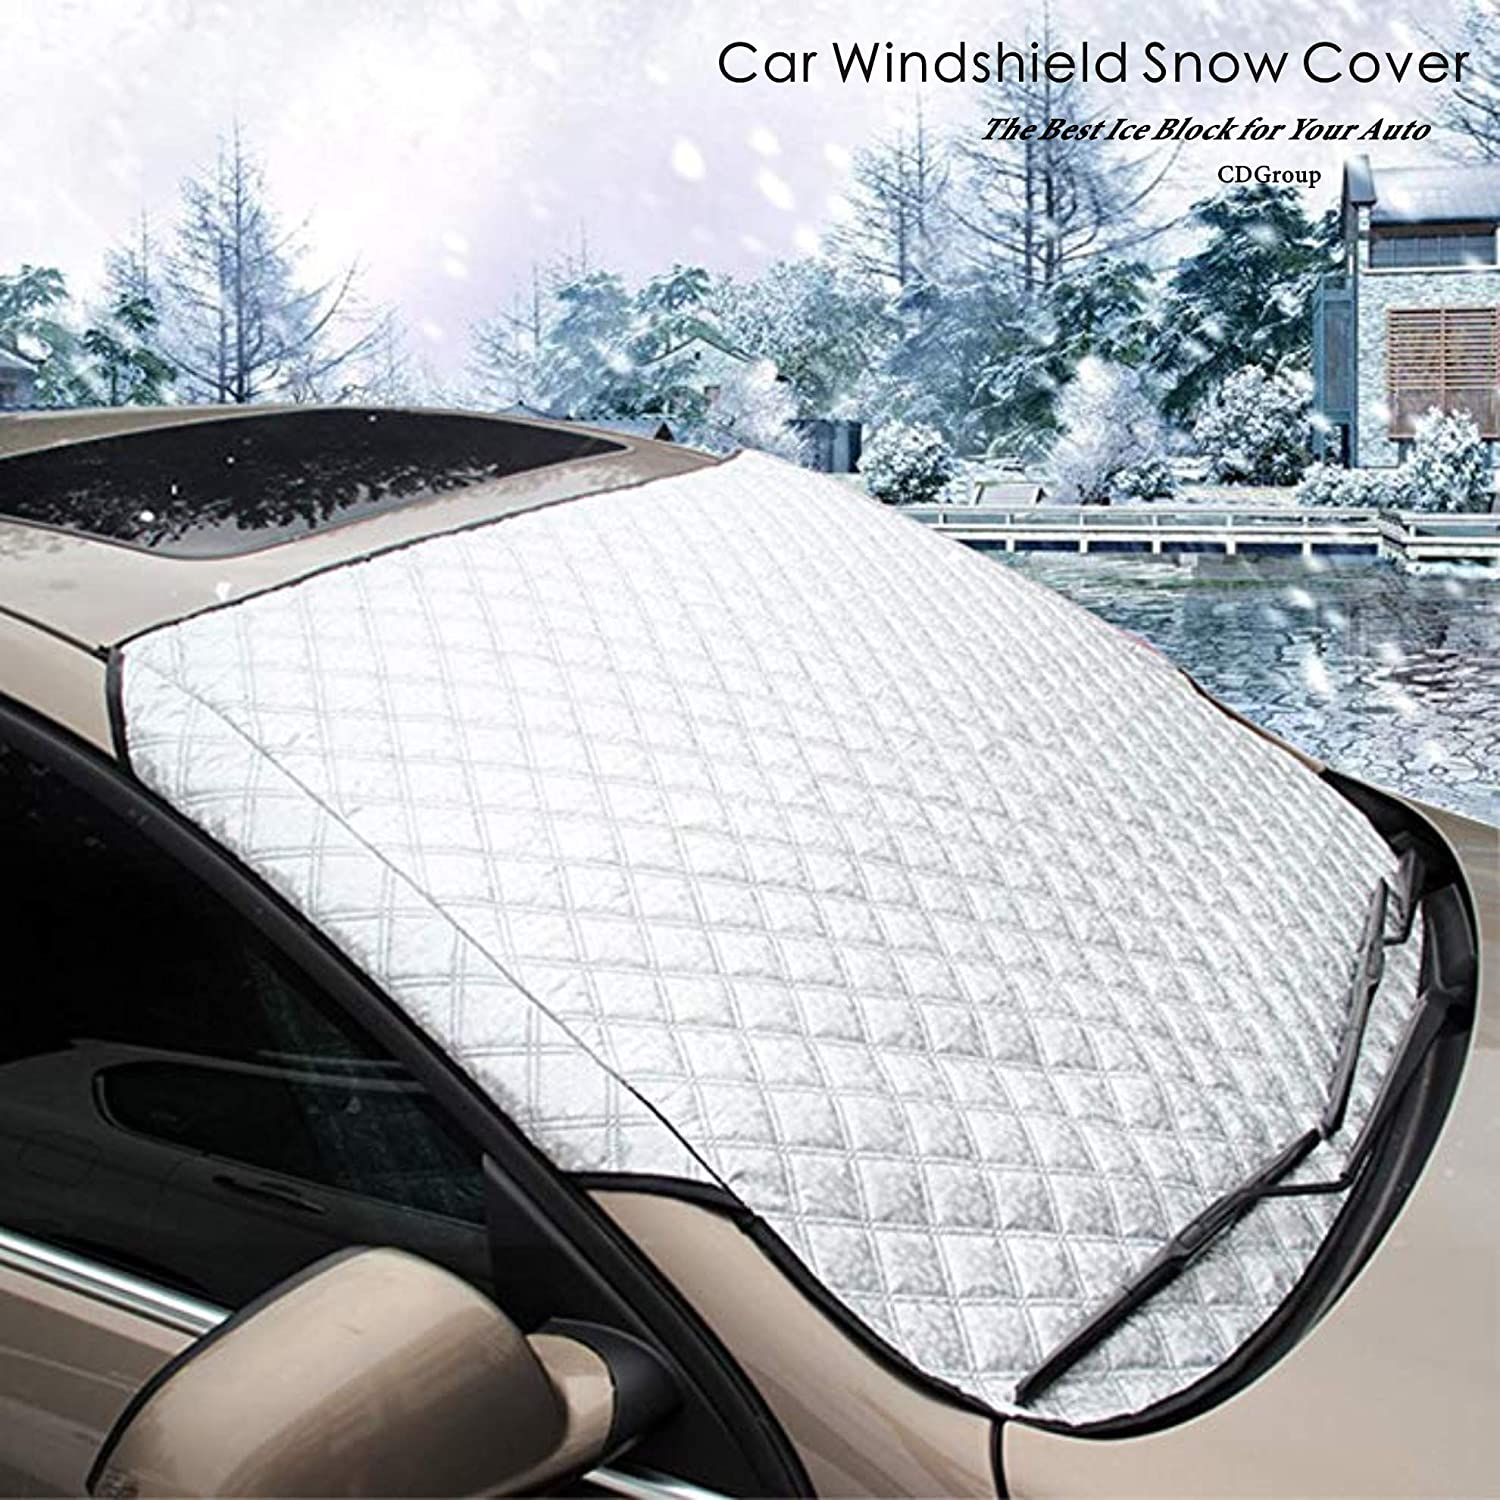 CDGroup Car Windshield Snow Cover Frost Guard Windshield Cover for Winter Snow Frost Ice Dust Removal Winter Windshield Cover SUV Car Front Sunshade Universal All Weather CDG-Hazgoldaz